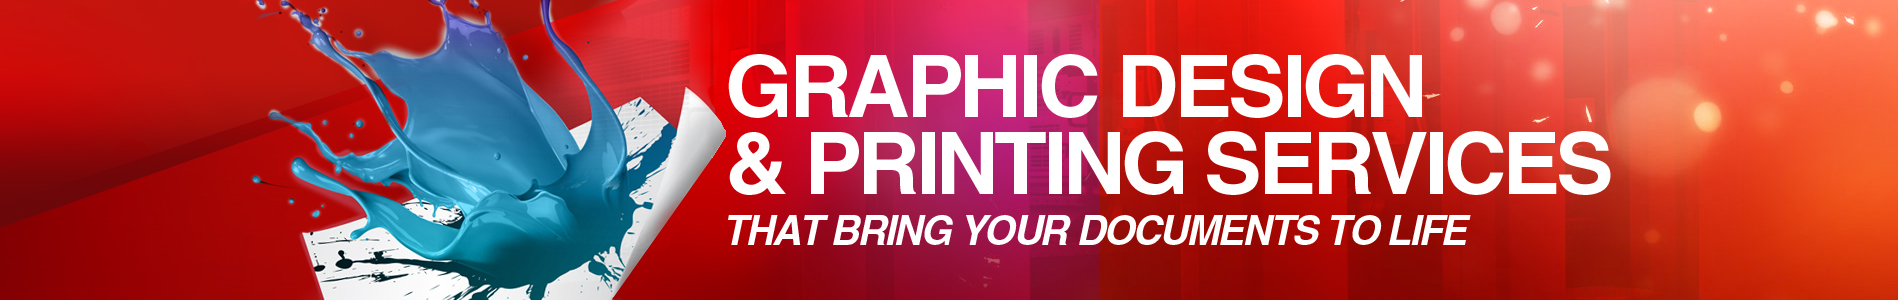 Graphic Design and Printing Services that bring your documents to life